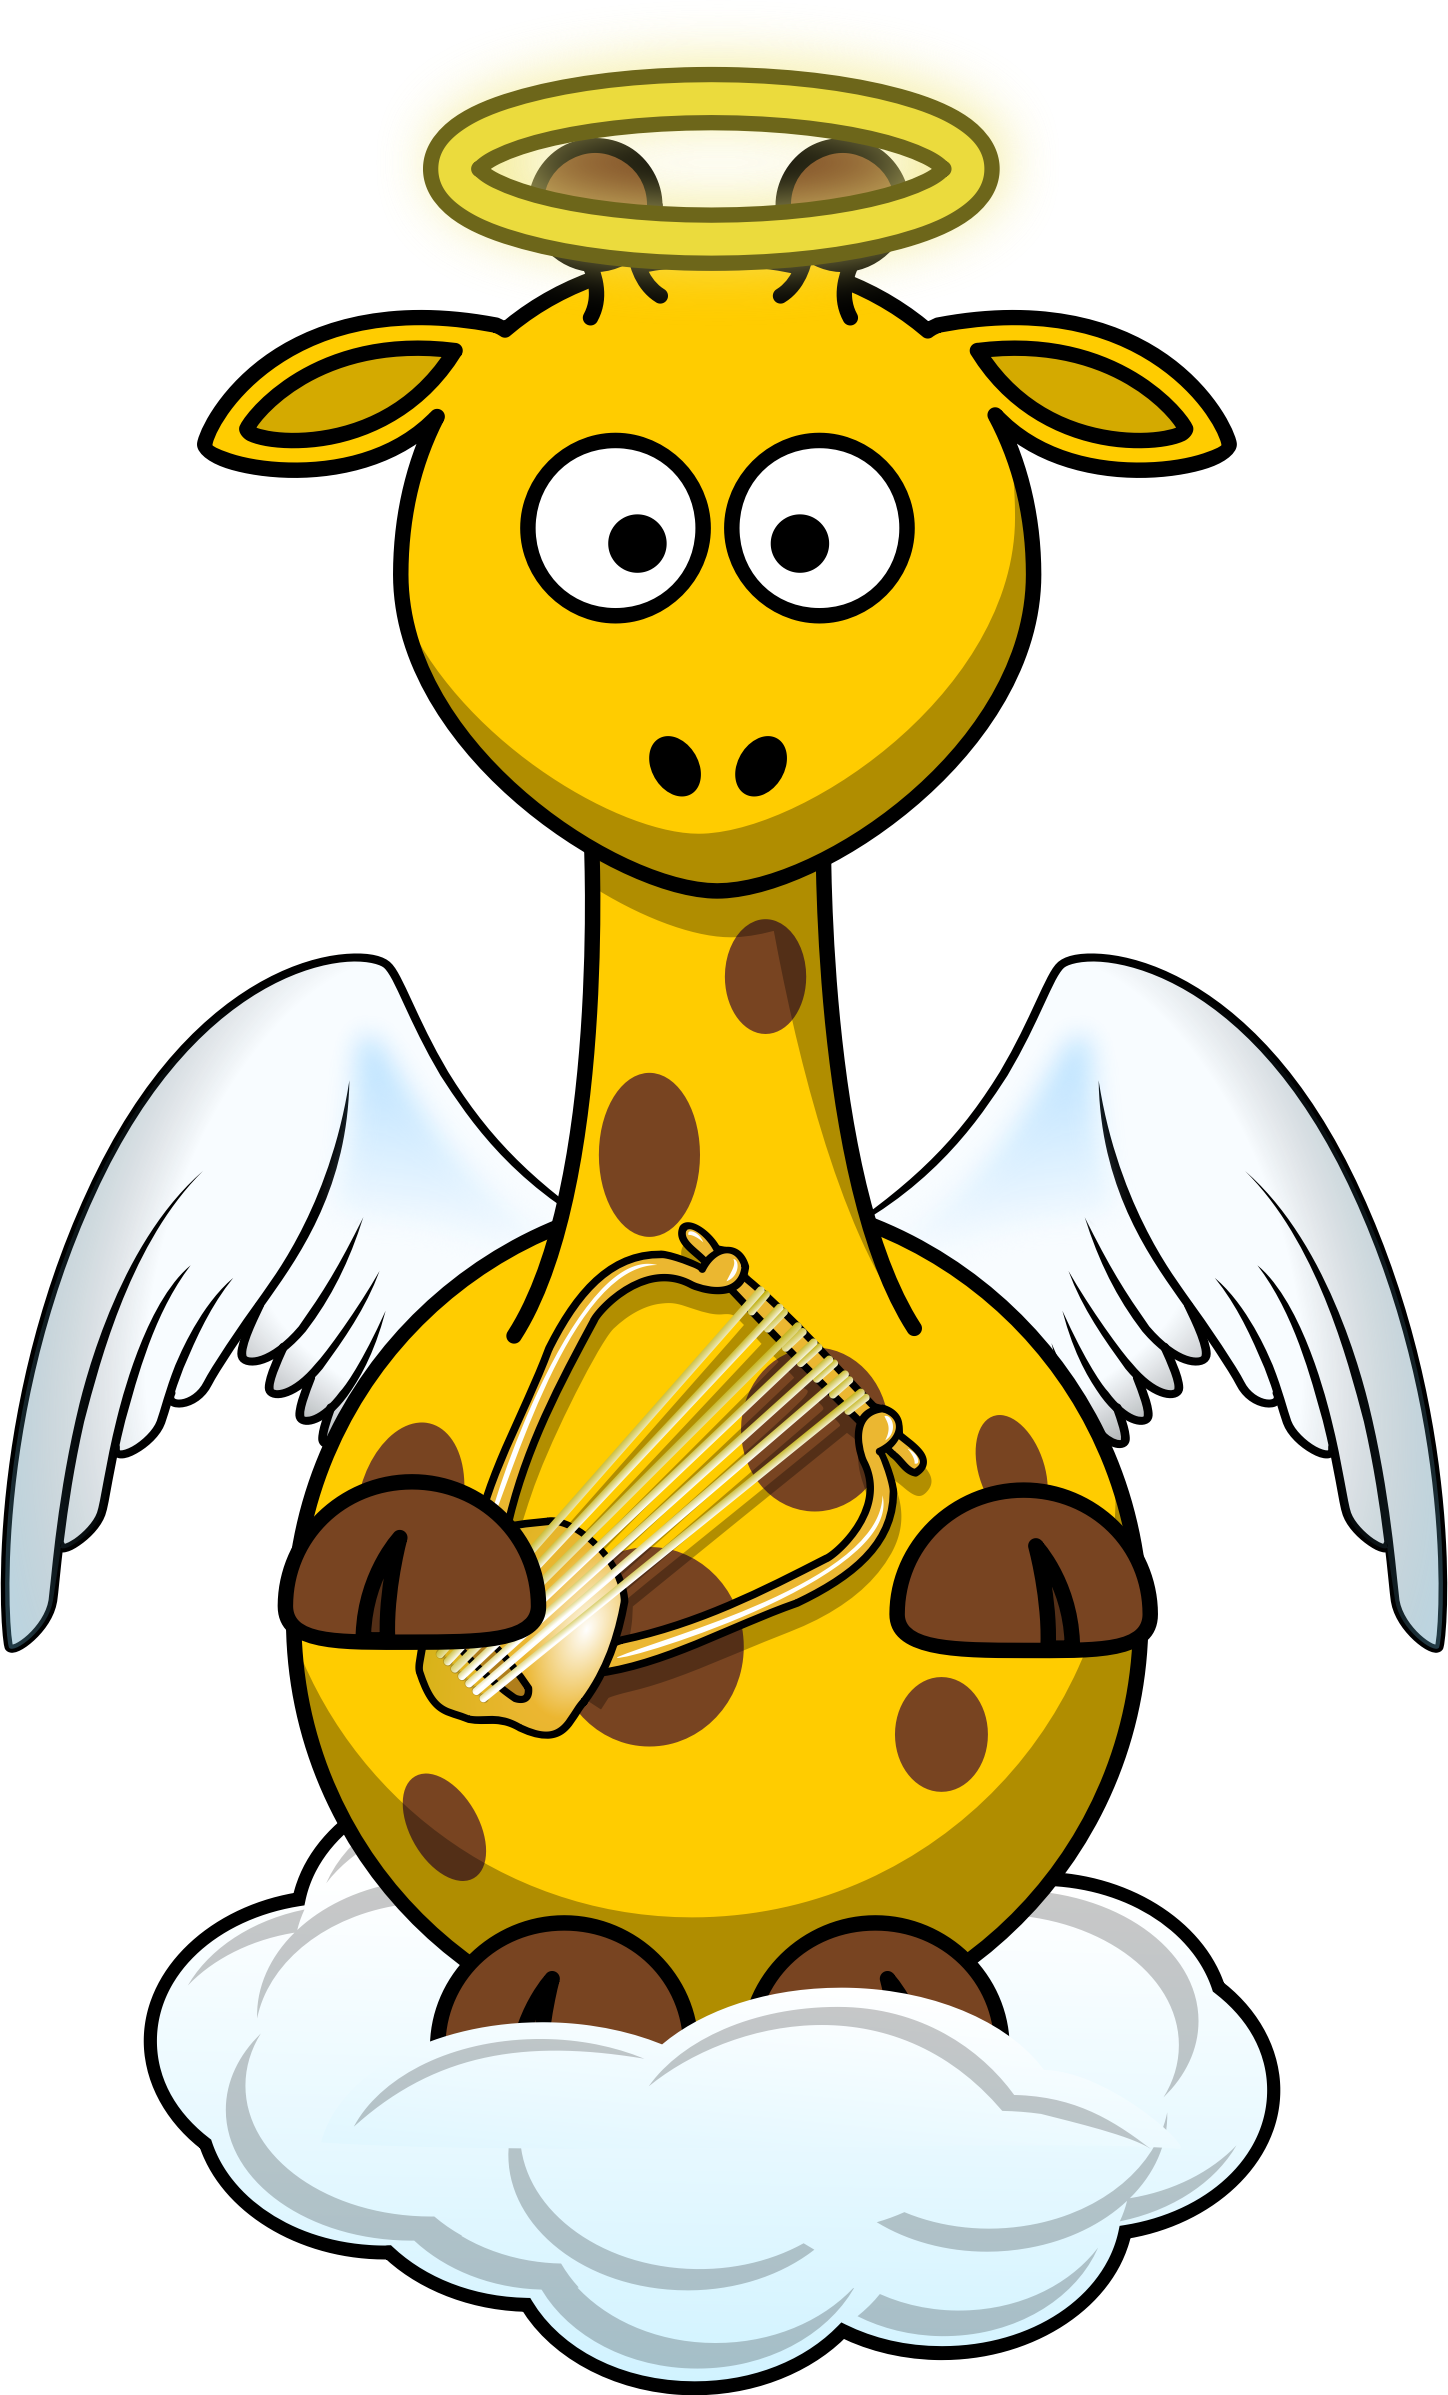 Motivation clipart psychology. Giraffe angel by bingenberg